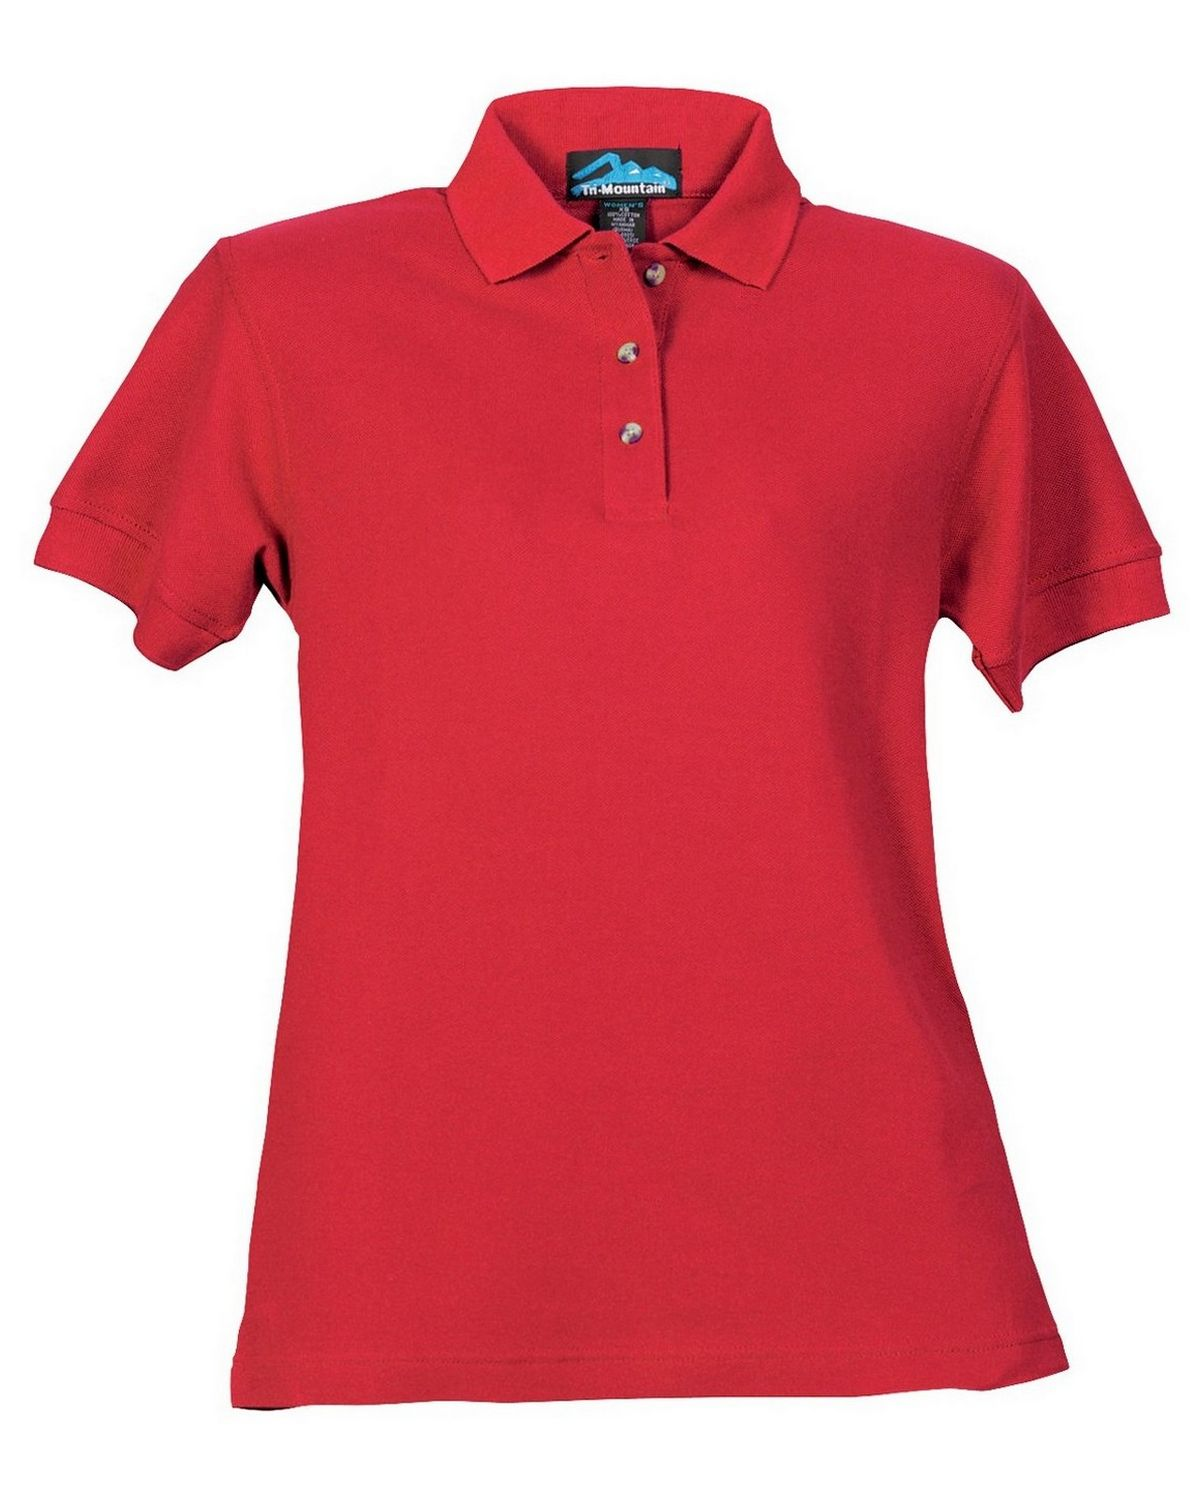 Tri-Mountain 166 Autograph Golf Shirt - Red - L 166